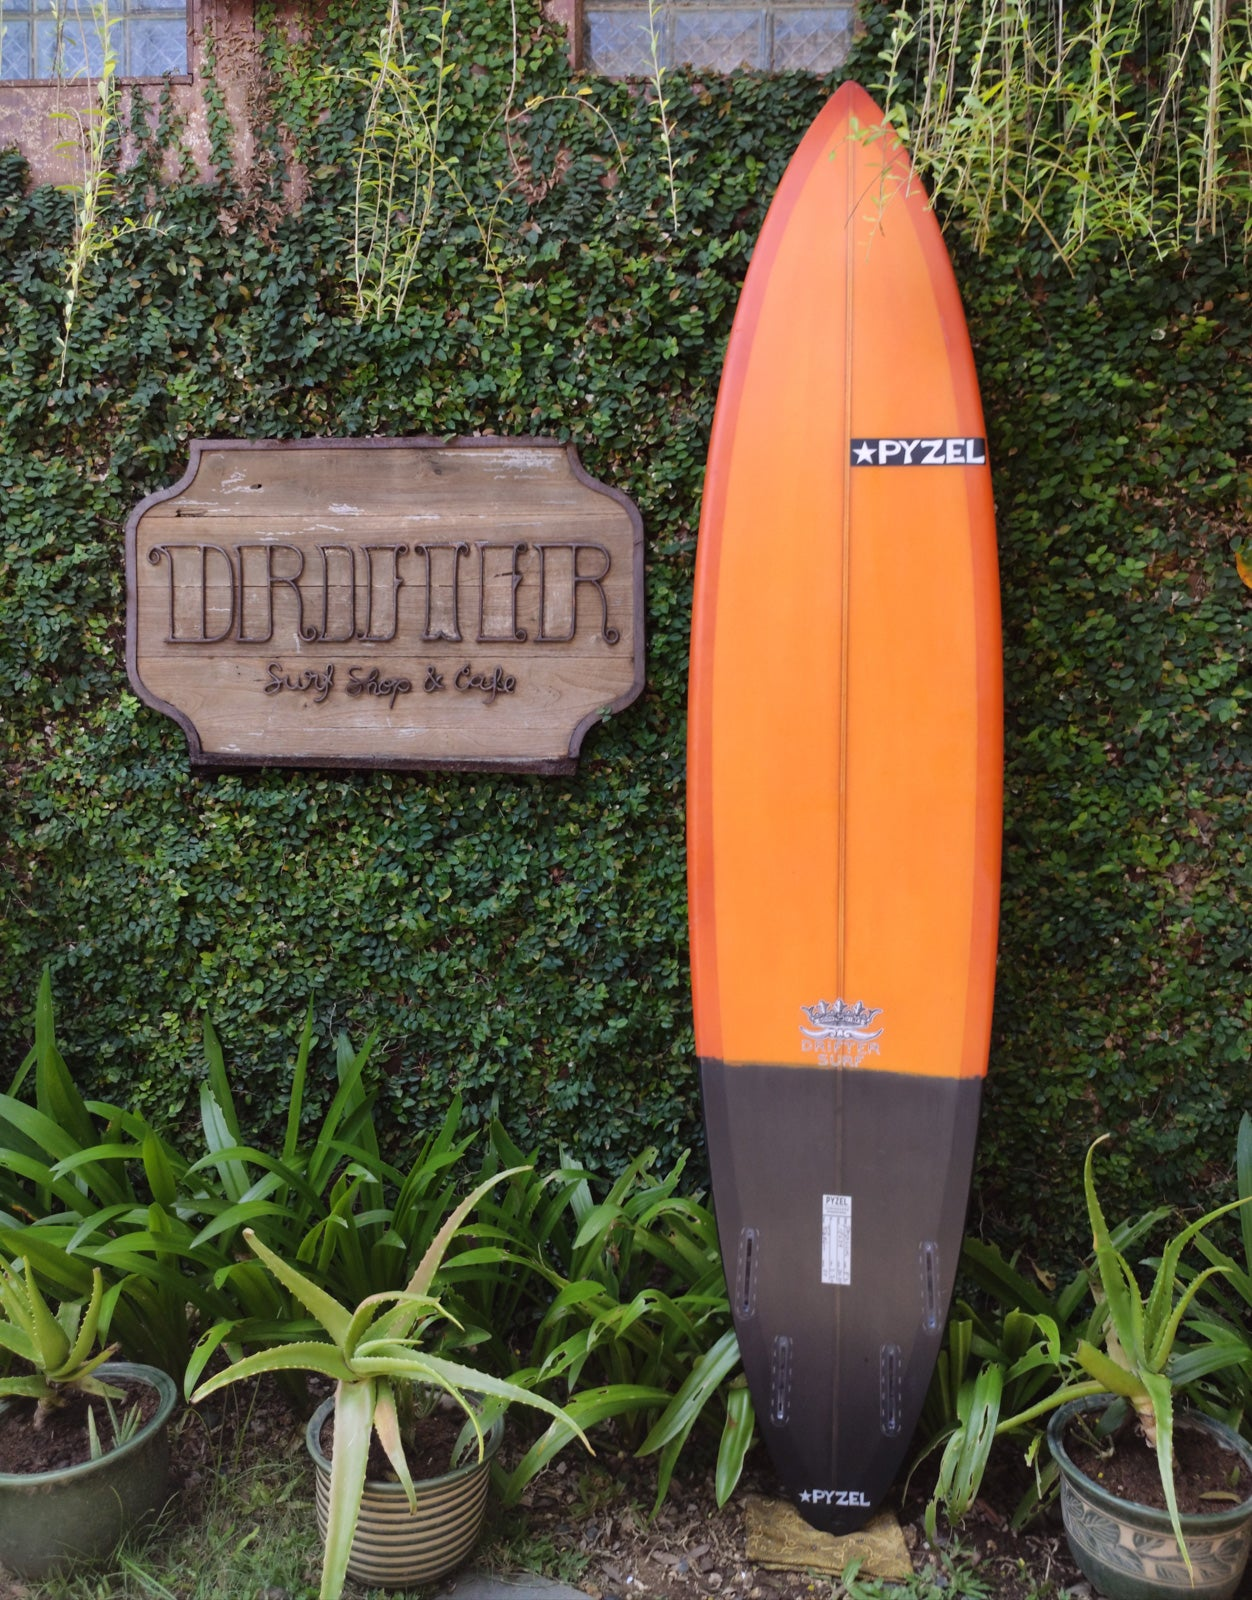 "Pyzel Surfboards | Padillac Model 8'0"" Quad #18538"